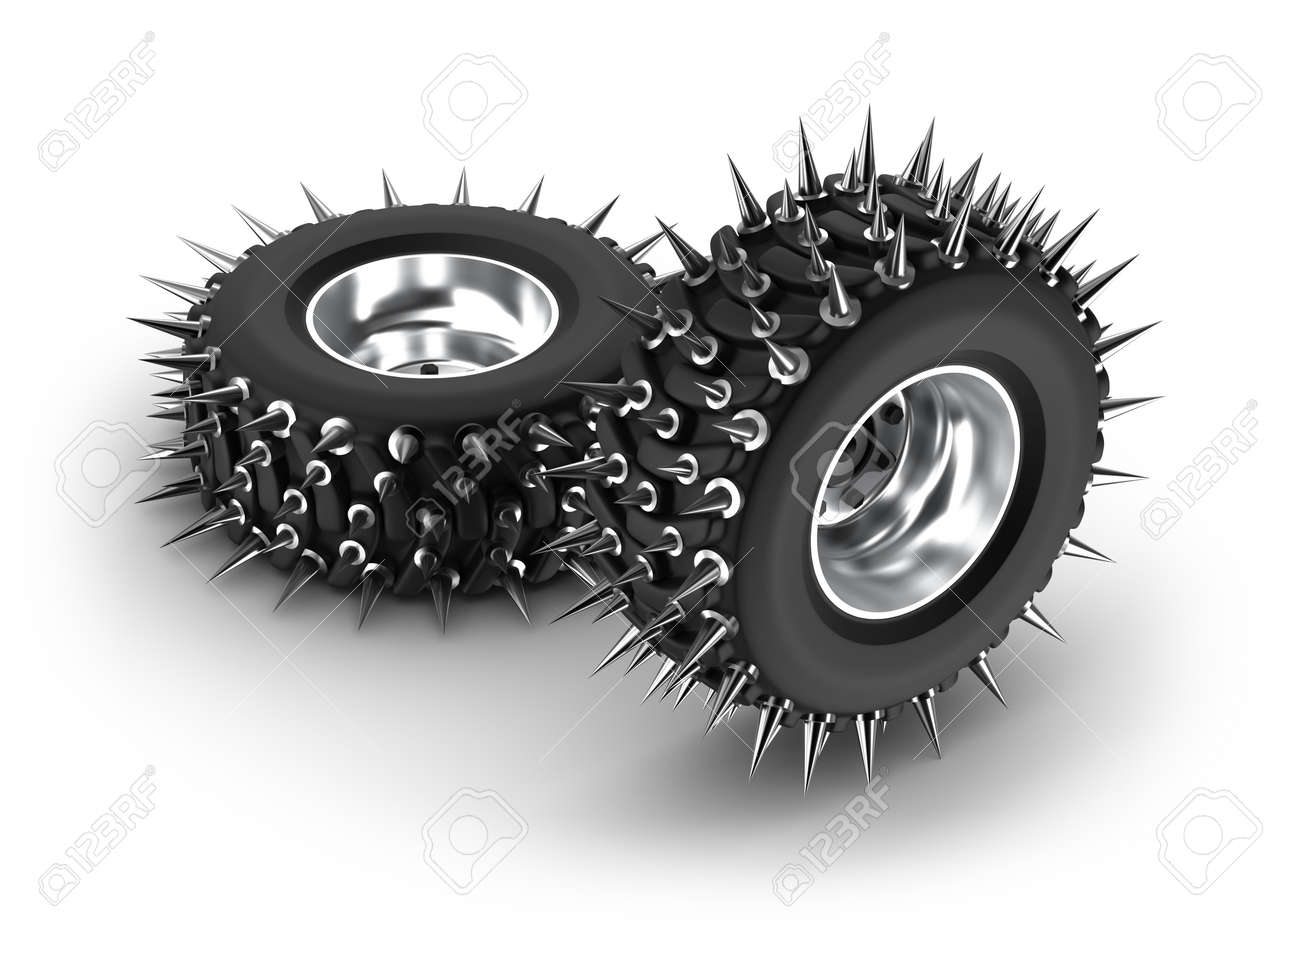 23860768-spiked-tires.jpg